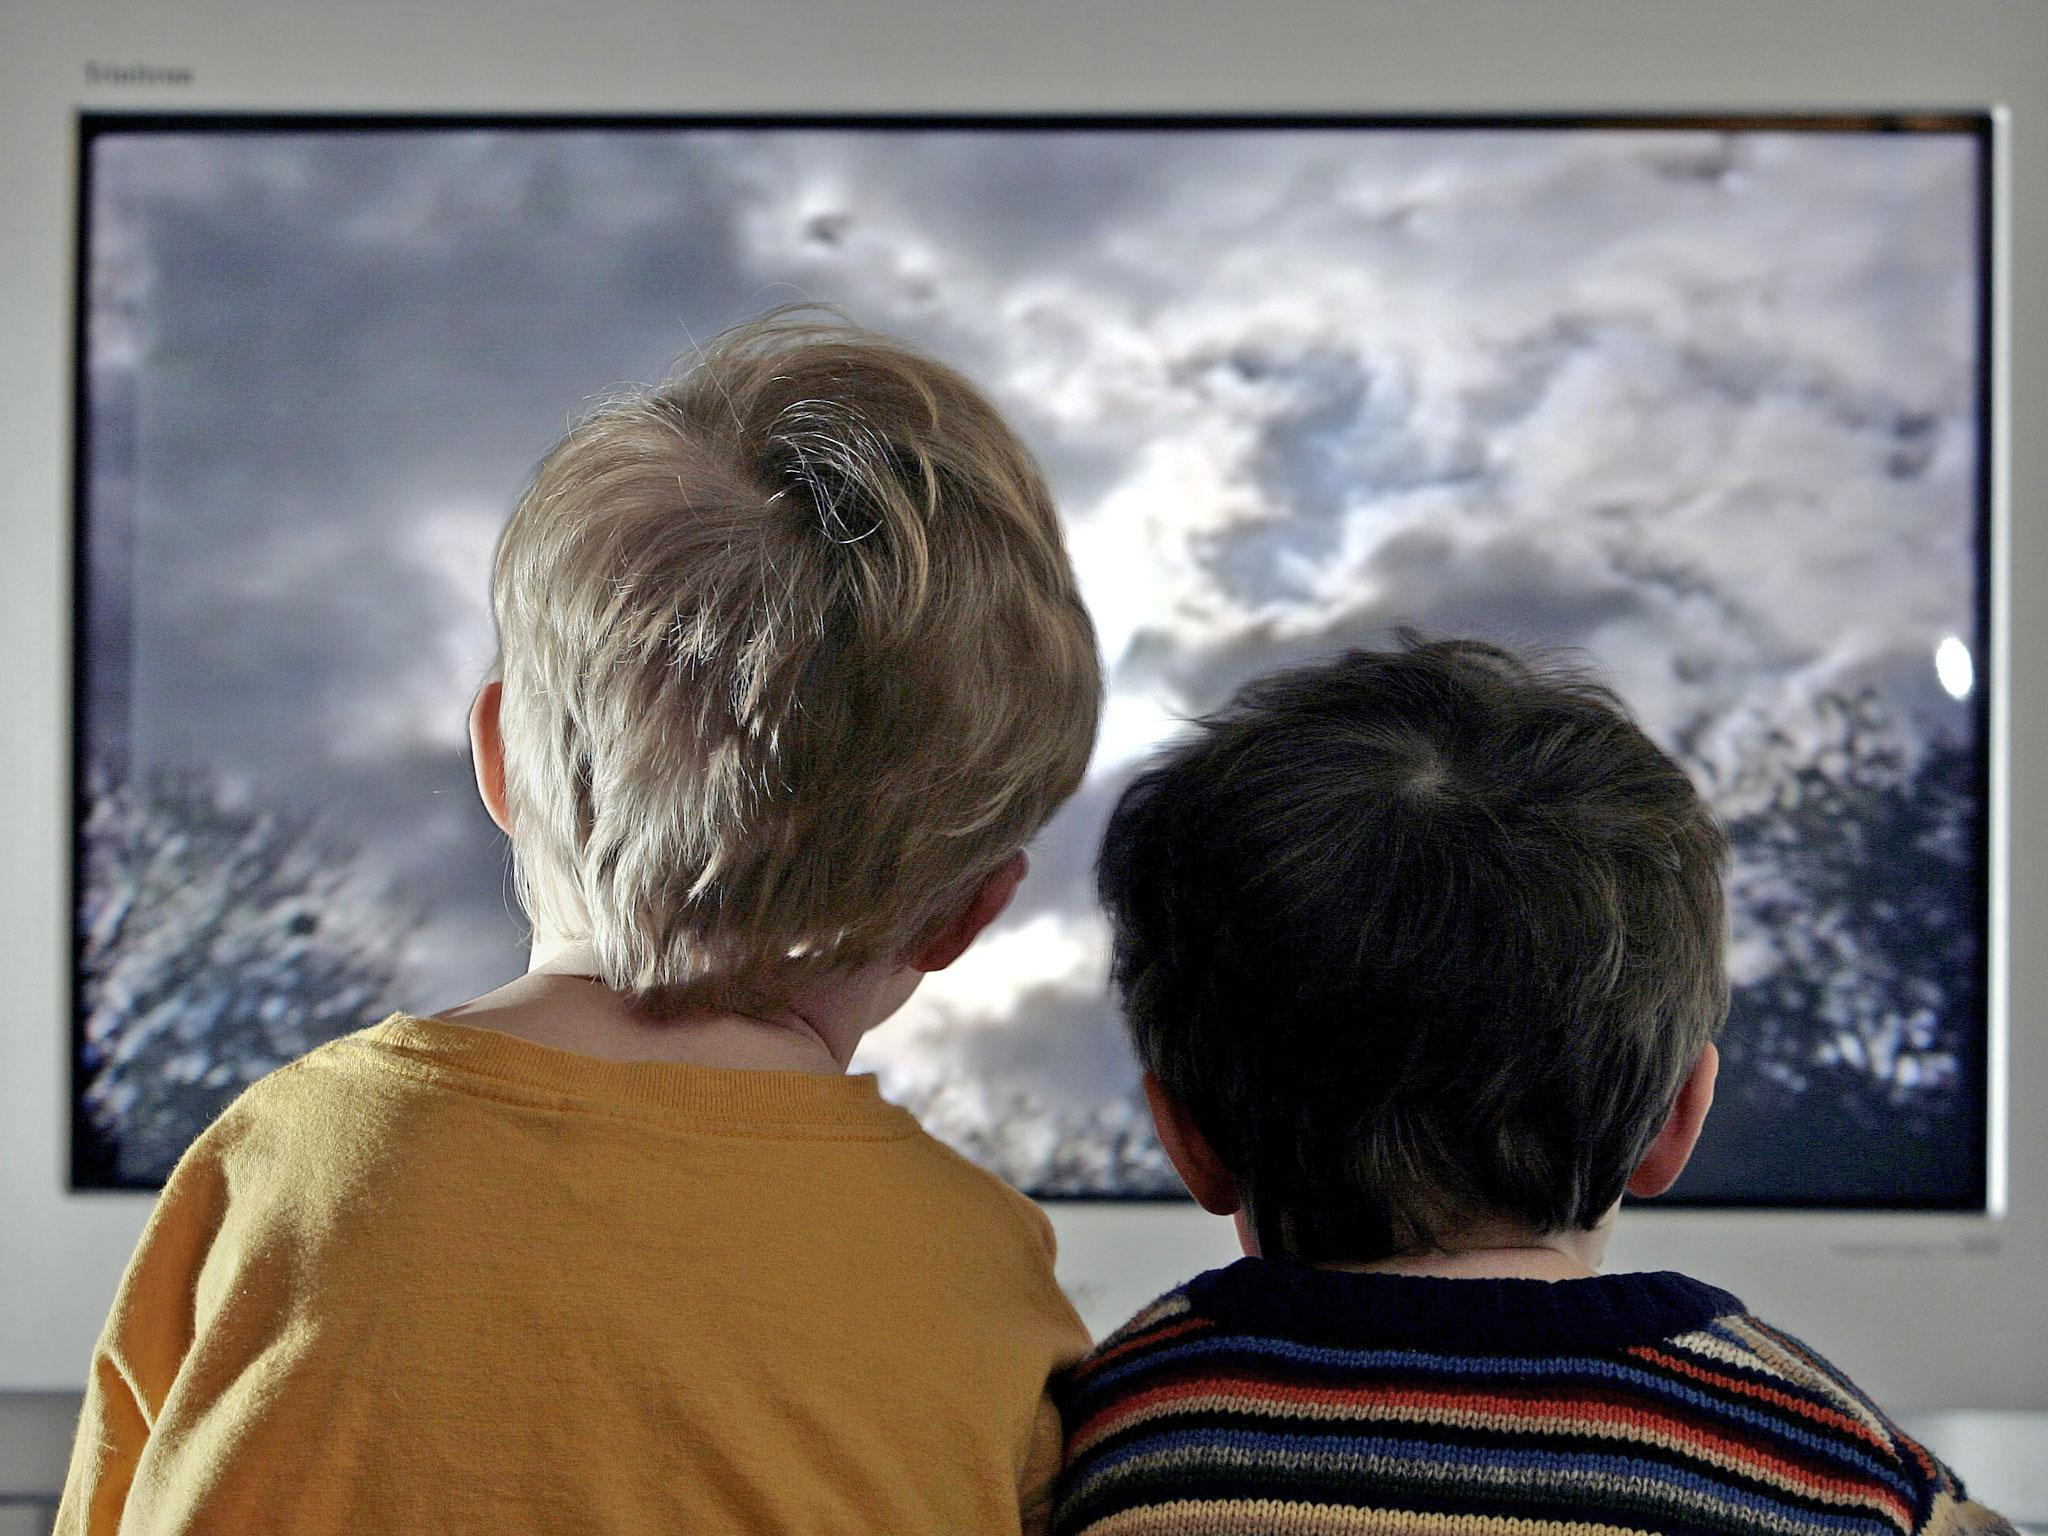 tv violence is harming our children essay